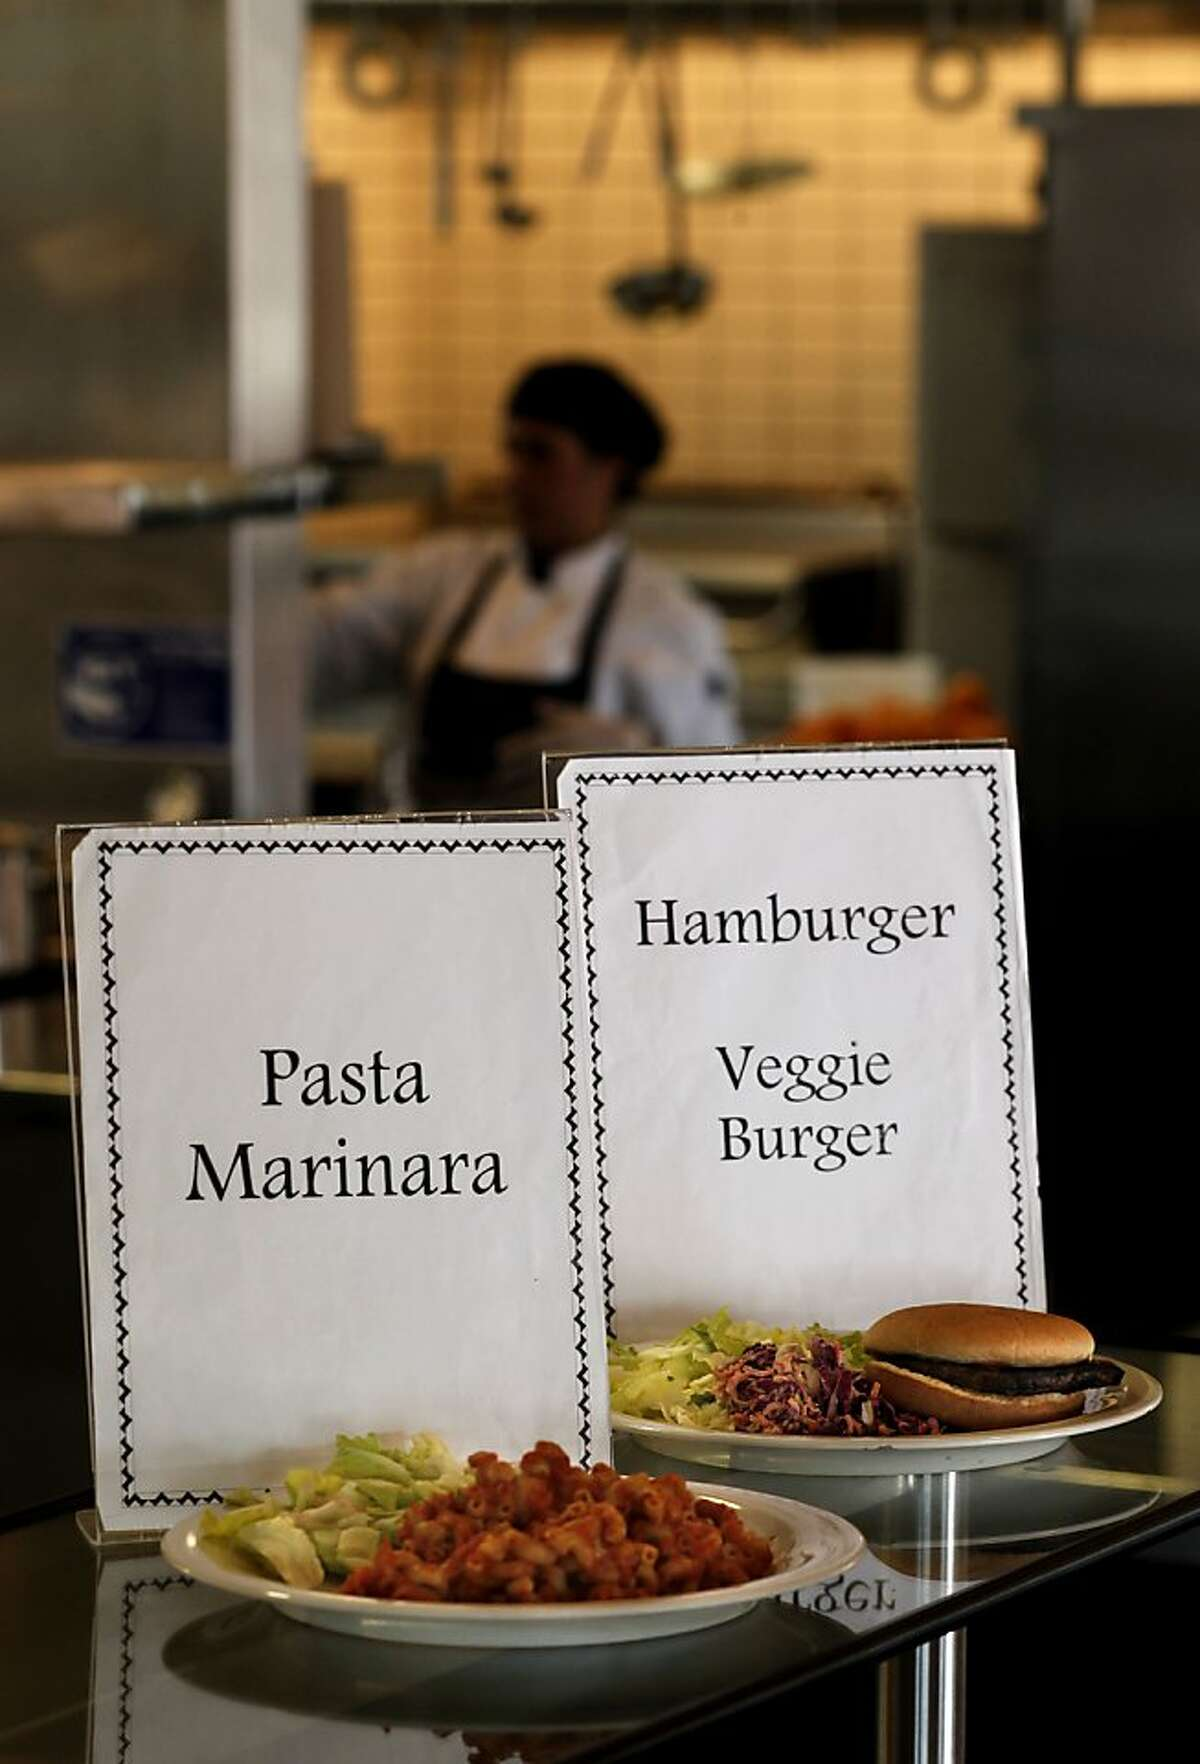 Today's special, Pasta Primavera, Beef or Veggie Burgers for lunch at Martin Luther King Jr. Middle School in Berkeley, Ca., on Wednesday January 25, 2012. The Federal government announced today new school lunch regulations.